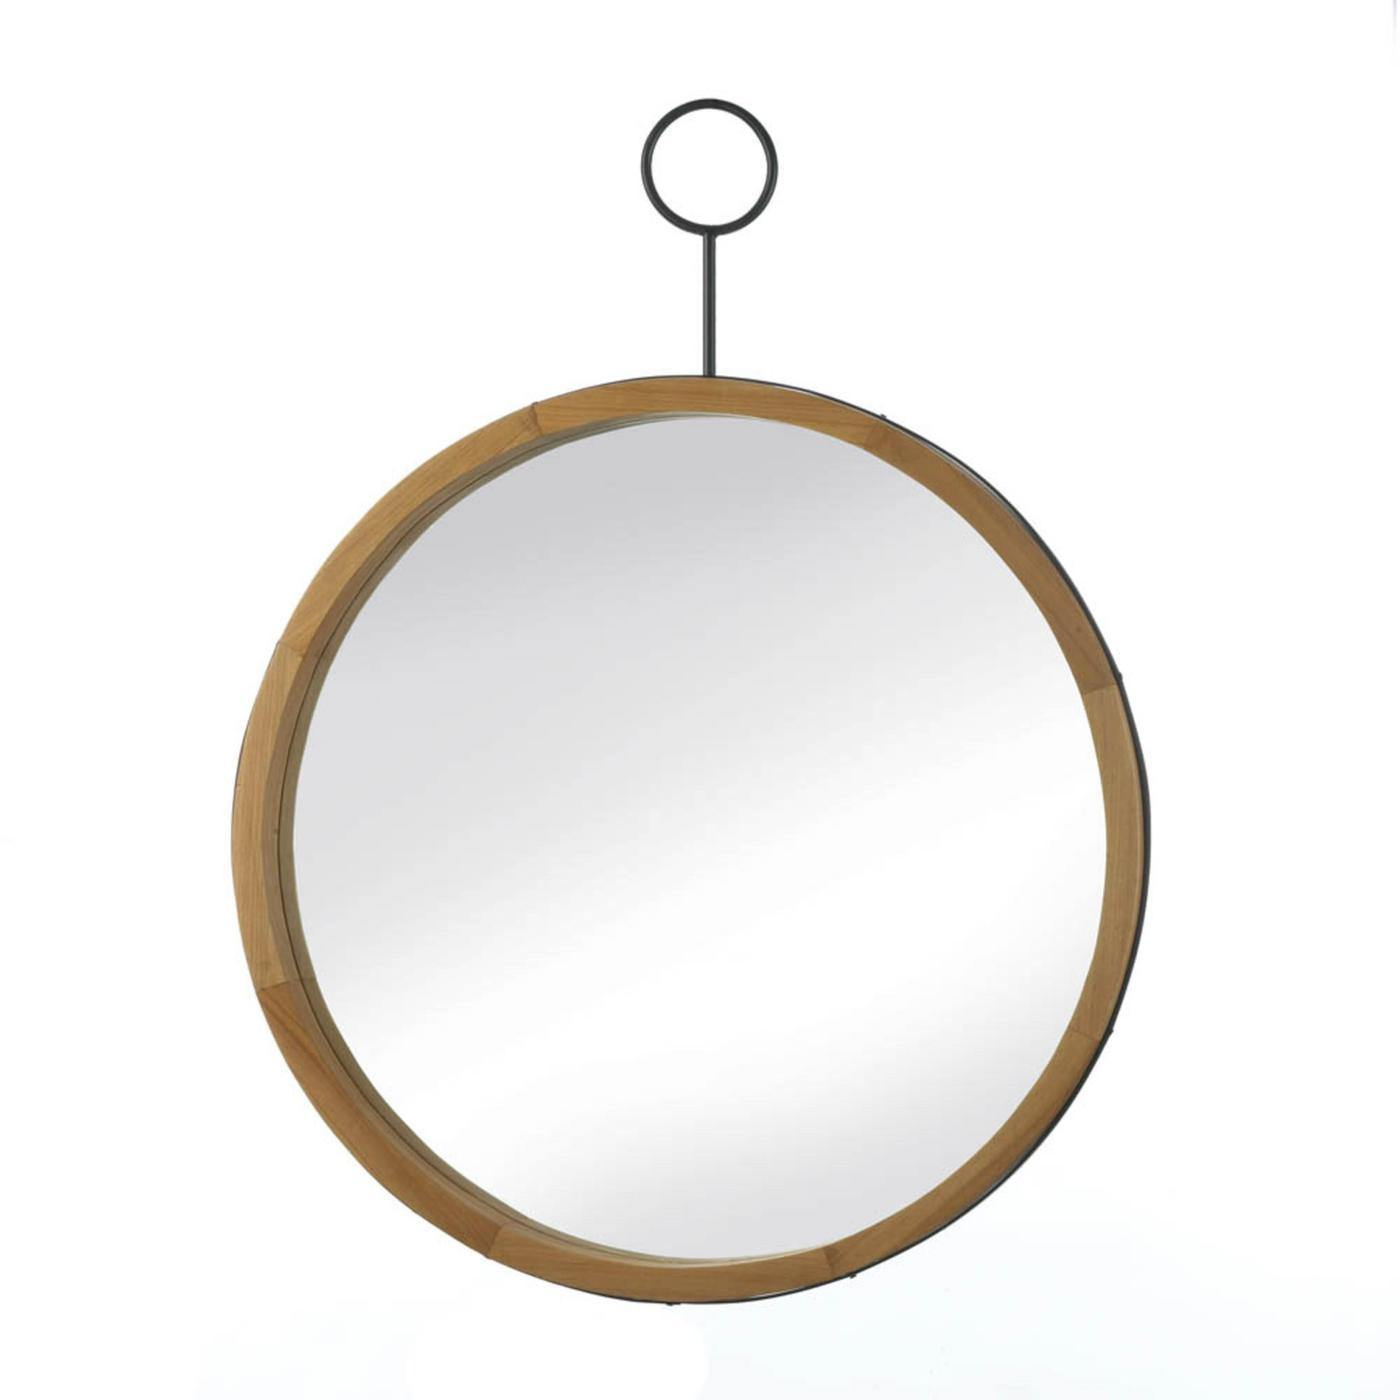 Eva Round Wood-Frame Mirror with Round Hook